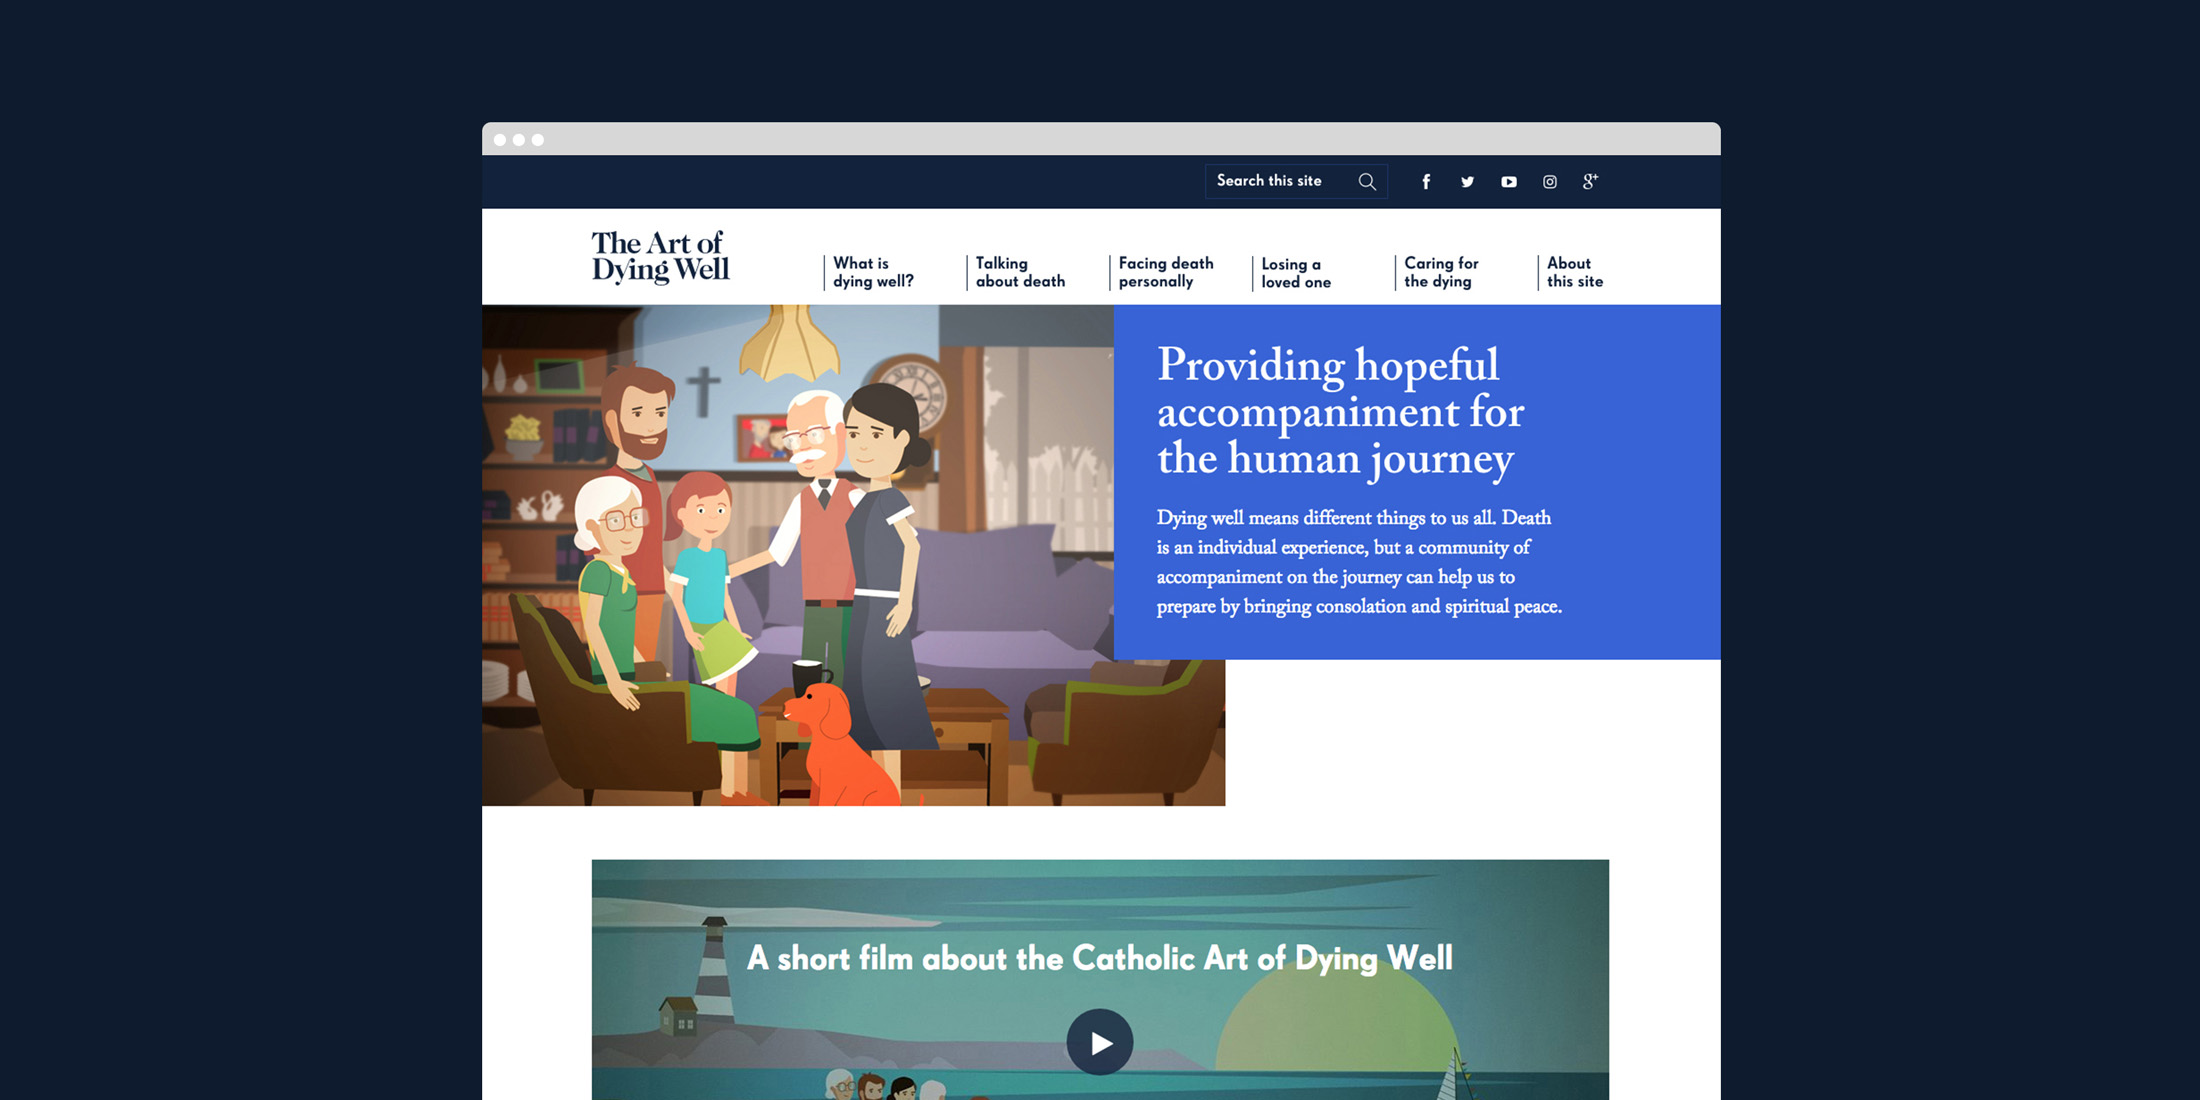 The Art of Dying Well homepage